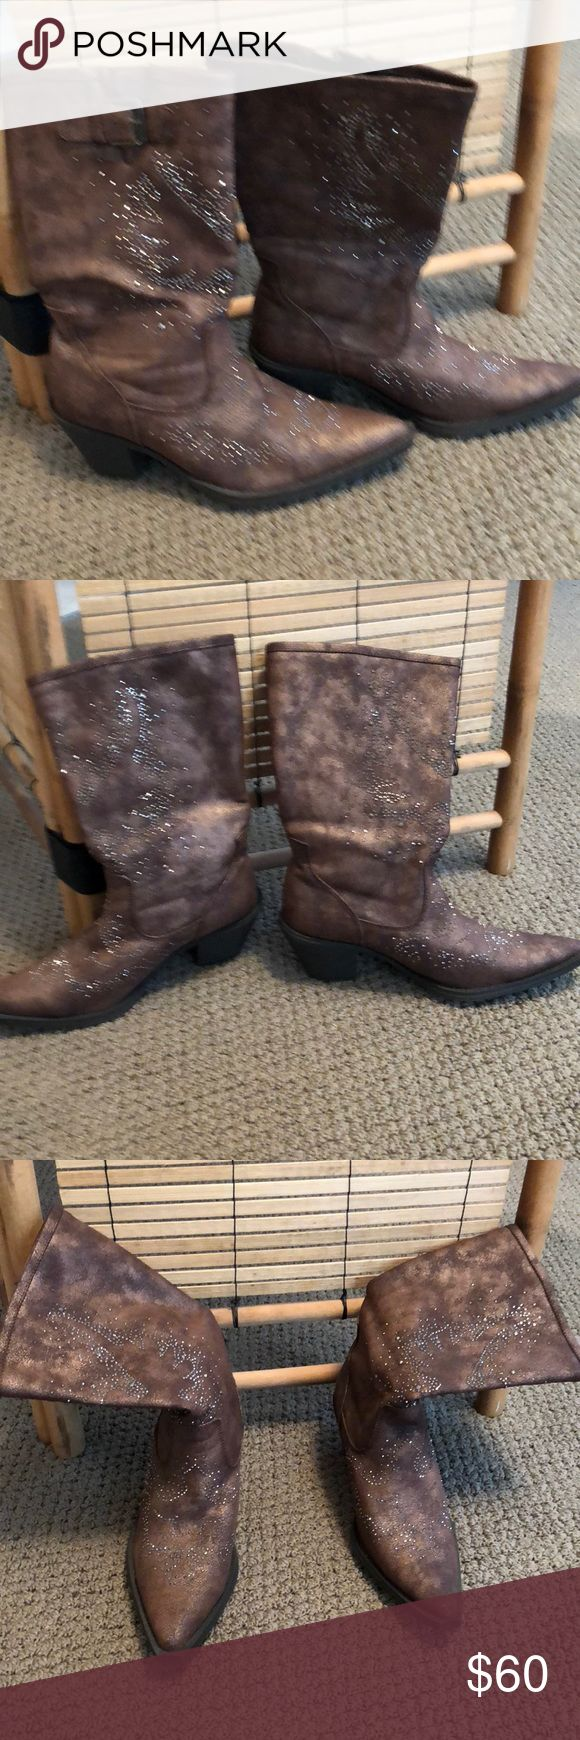 Fun Rhinestone Cowboy Boots SZ 7 Dance up a storm in these cowboy boots. Brown faux leather with rhinestone will make you want to start dancing! Only worn twice! Like new from Texas! Roper Shoes Heeled Boots